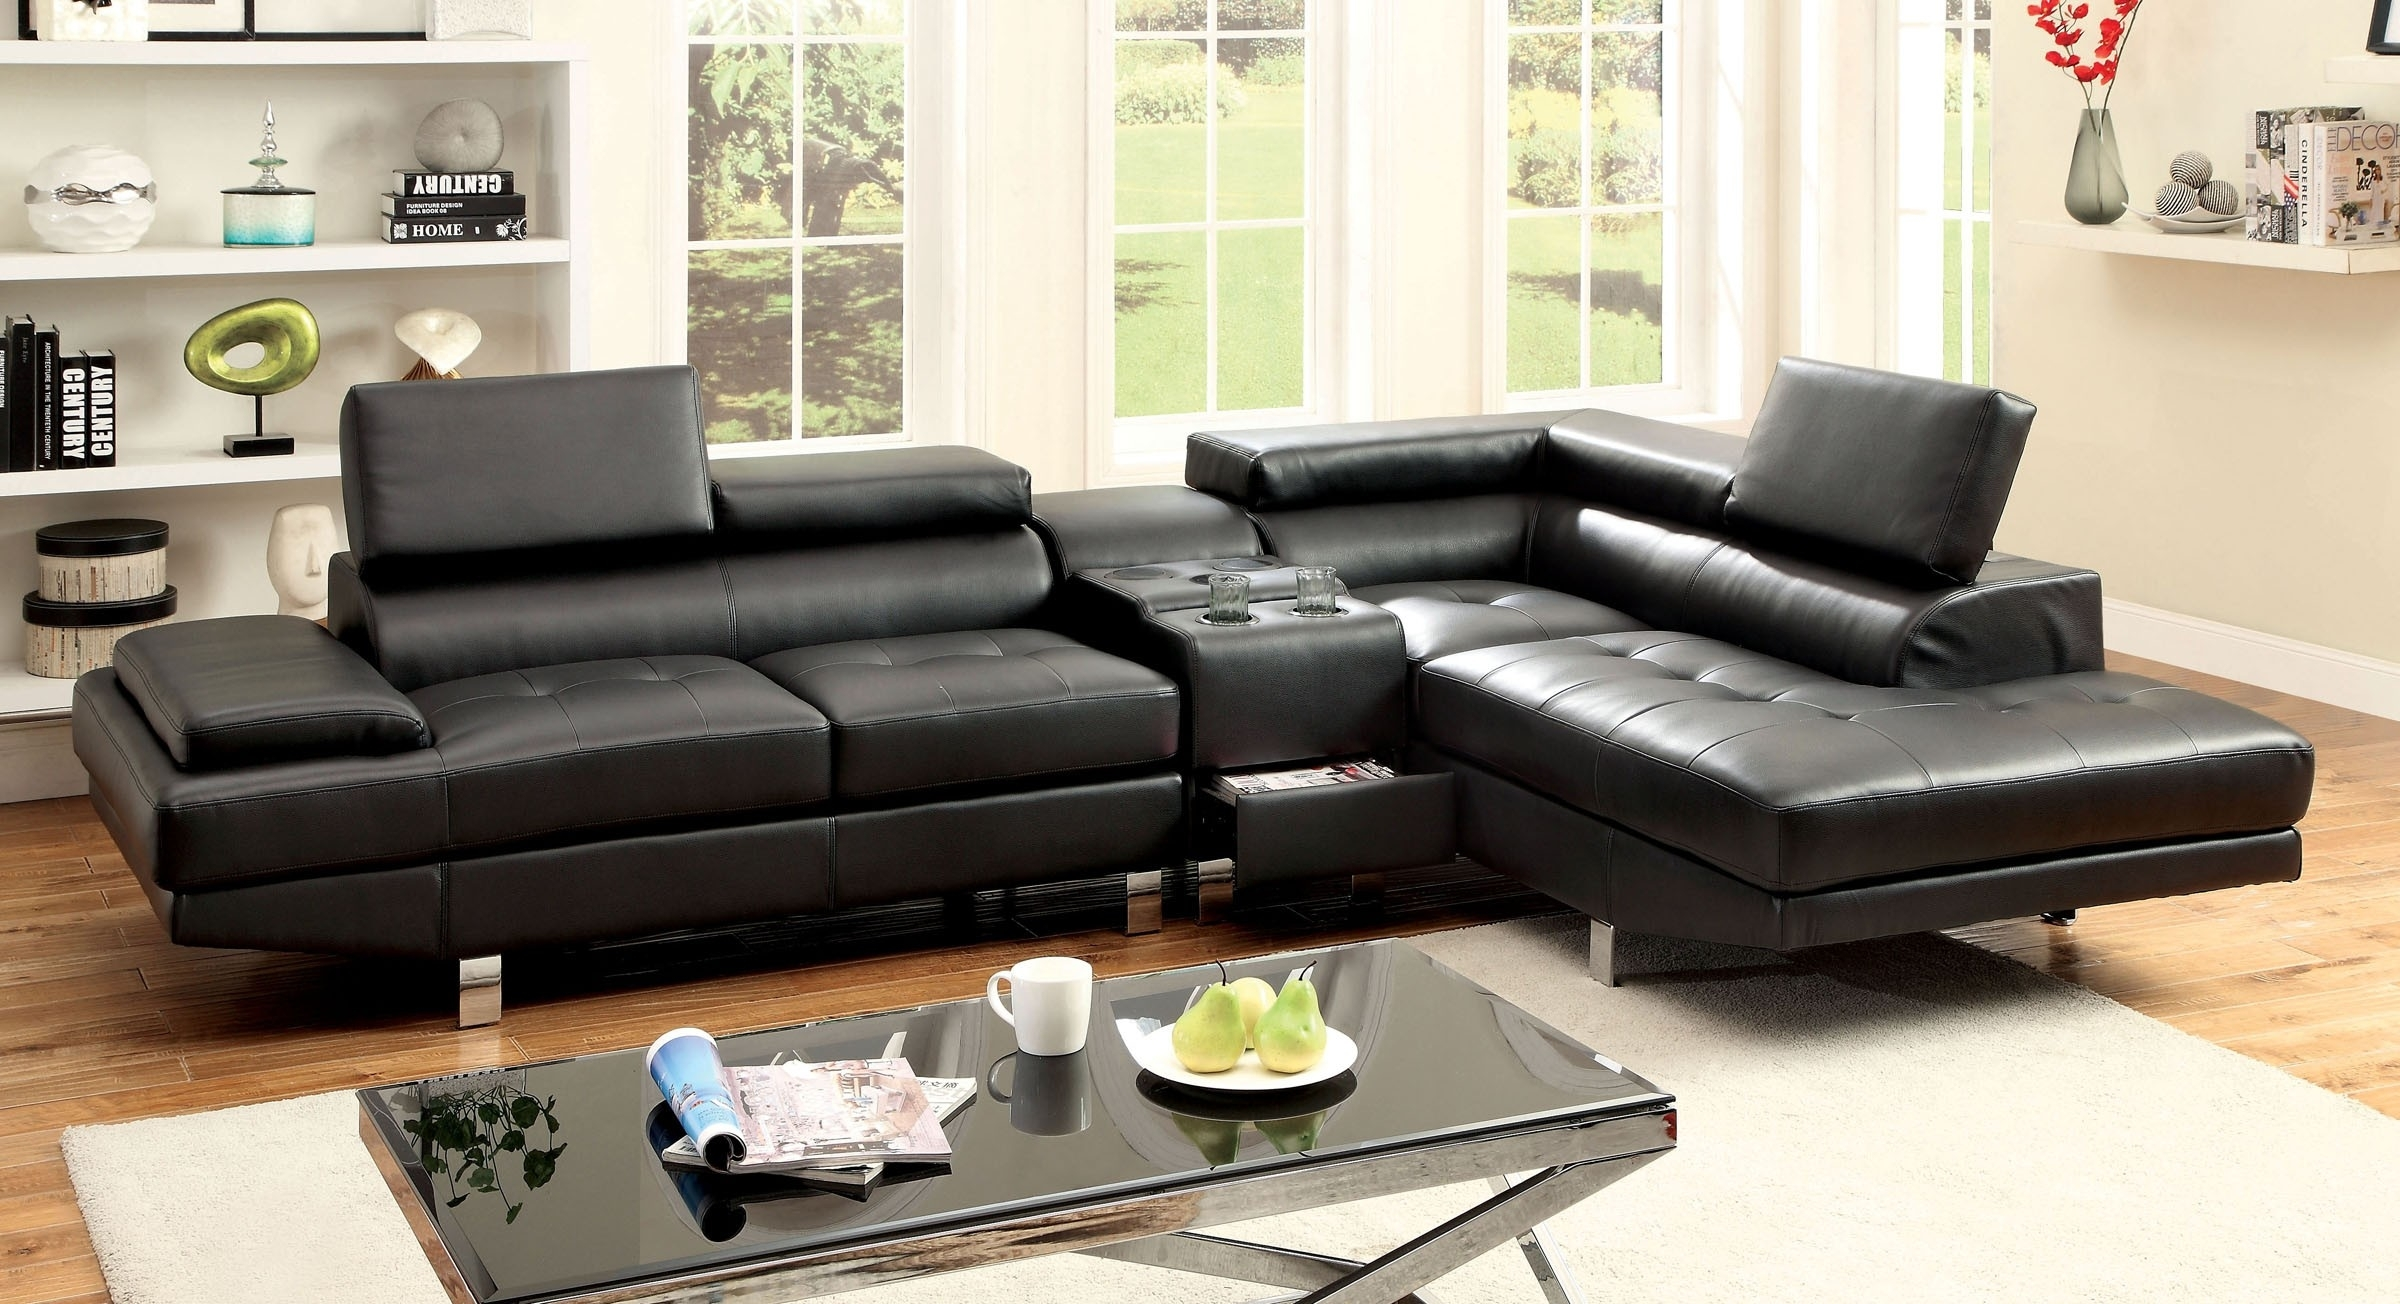 Sectional Sofa W/ Speaker Console (Cm6833Bk ) | Bb's Furniture Store Intended For Sectional Sofas With Consoles (View 9 of 10)